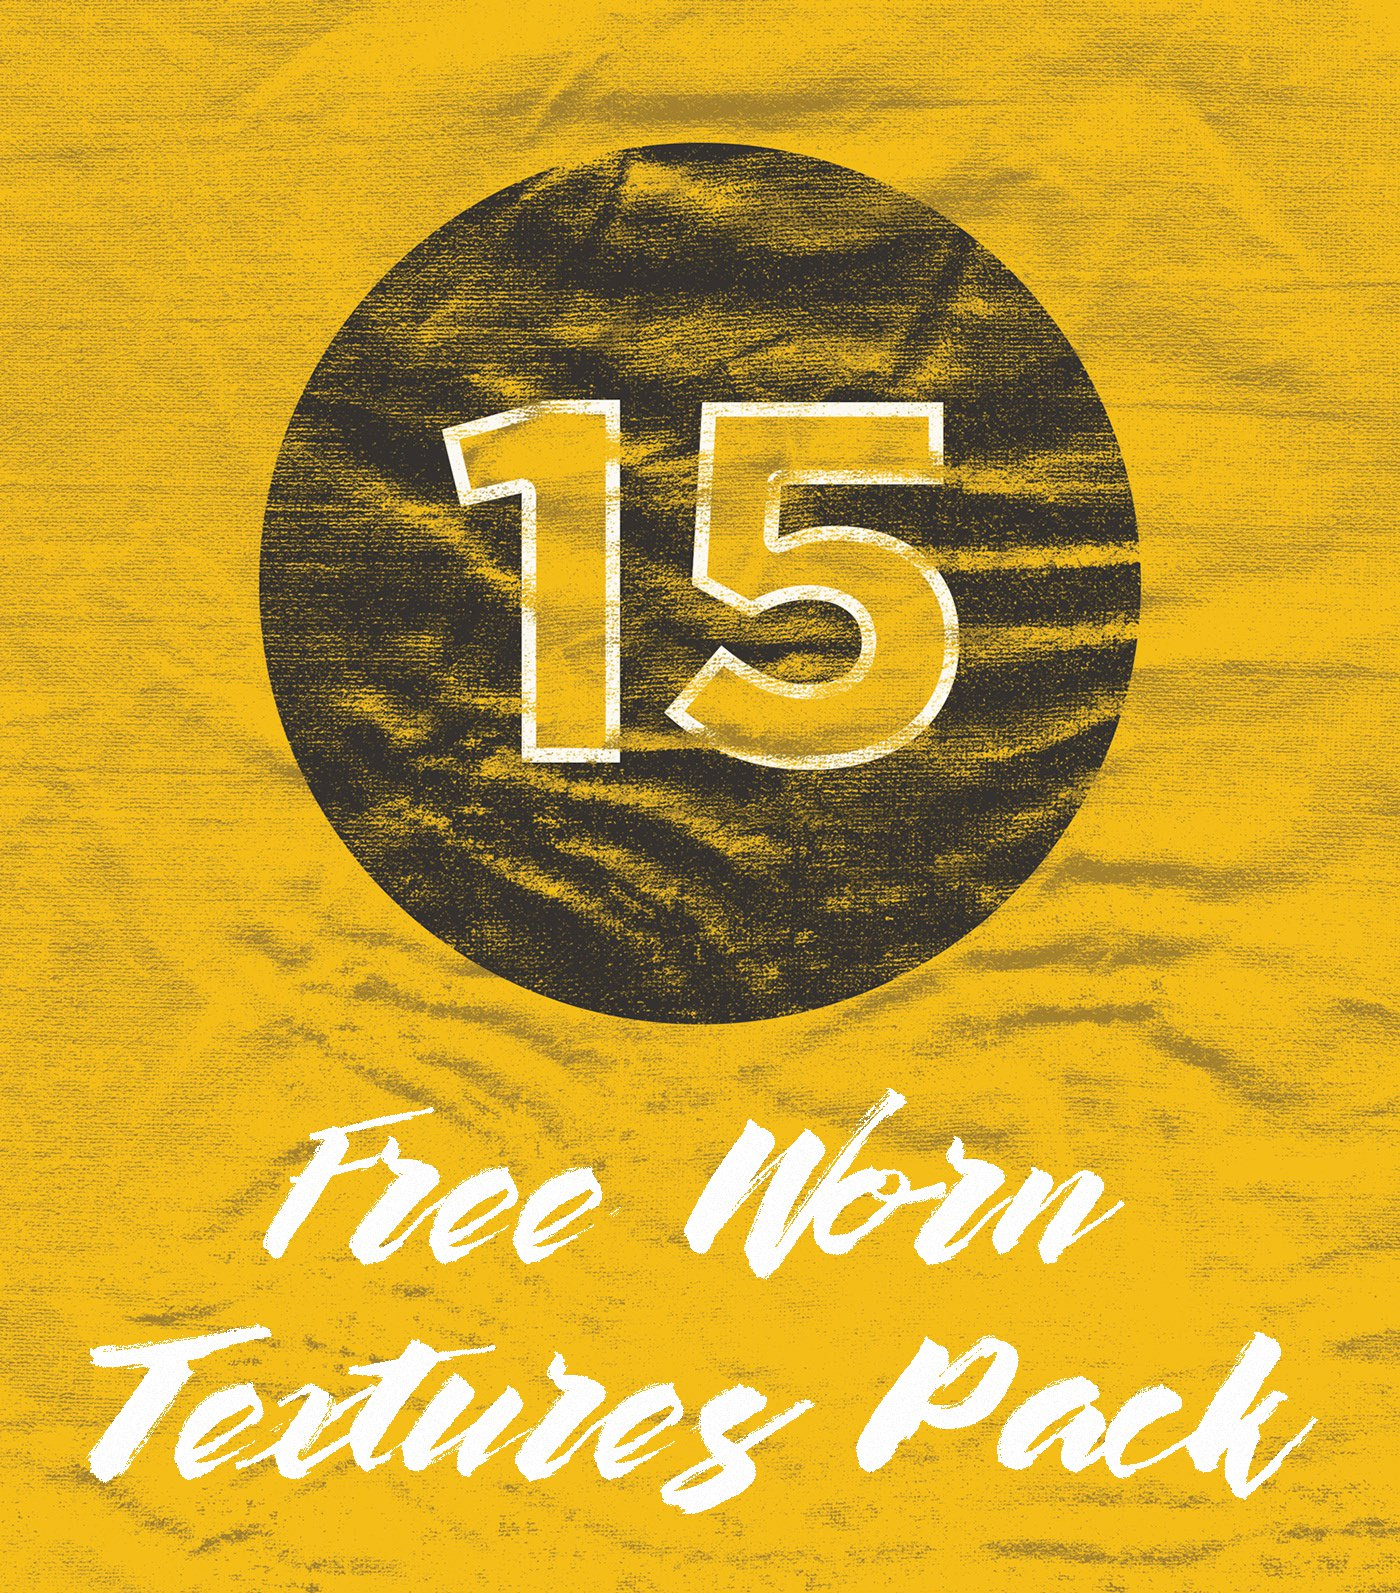 Free Worn Textures Pack